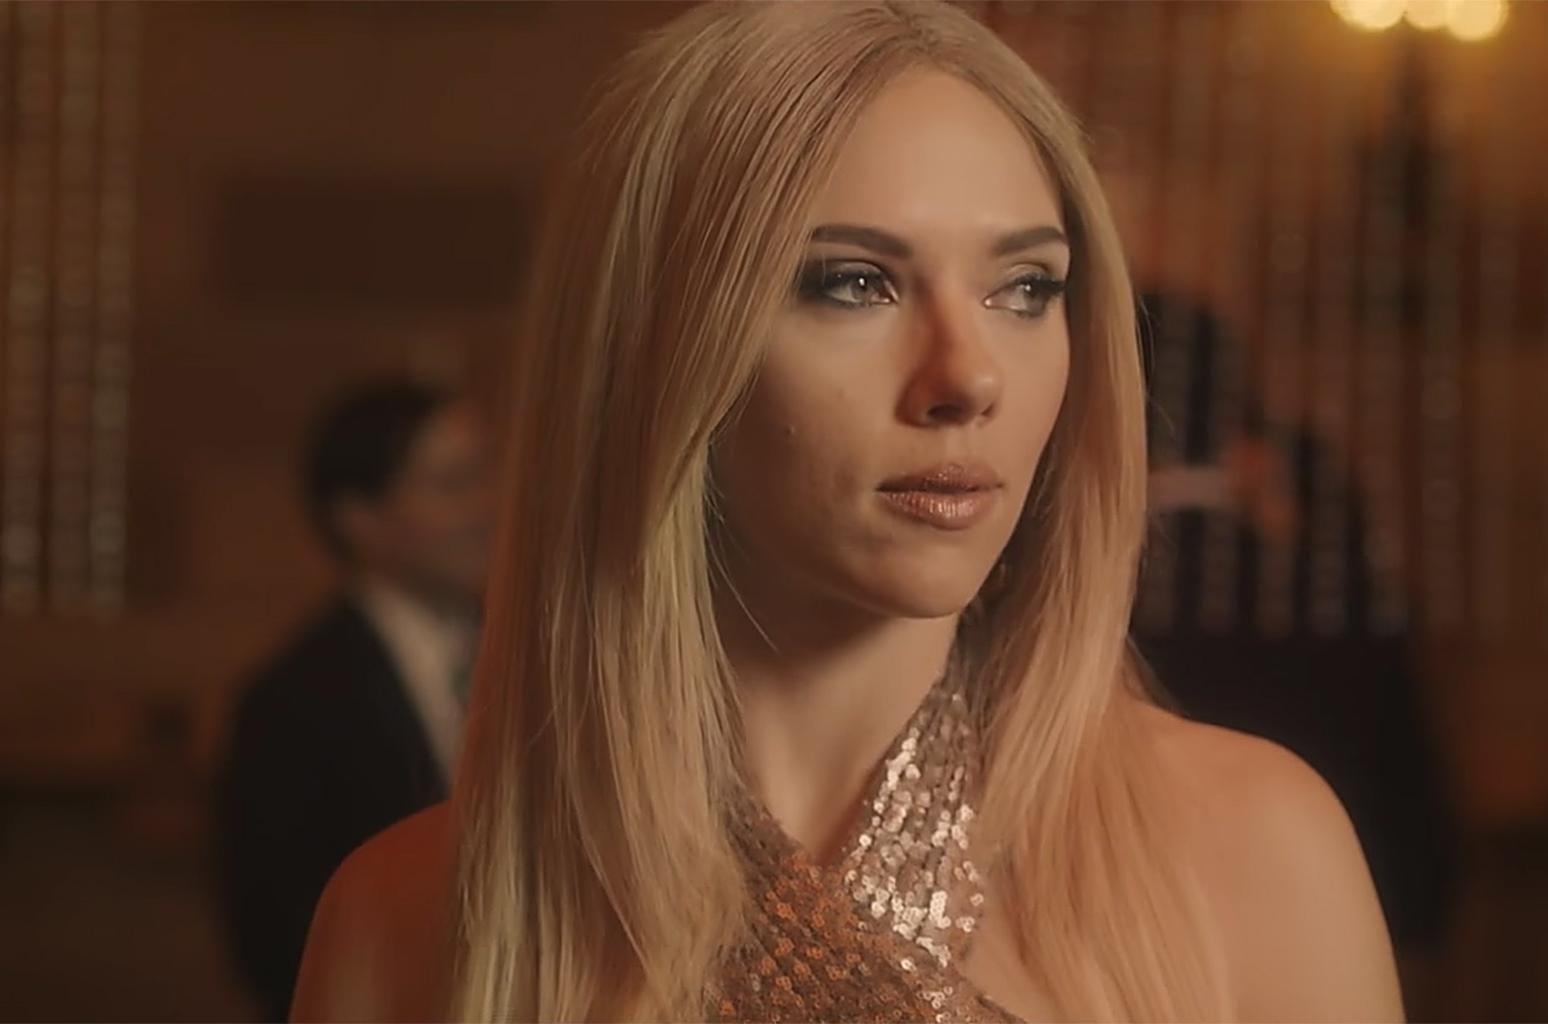 scarlett johnsson calls ivanka trump cowardly following scarlett johnsson calls ivanka trump cowardly following complicit interview the independent